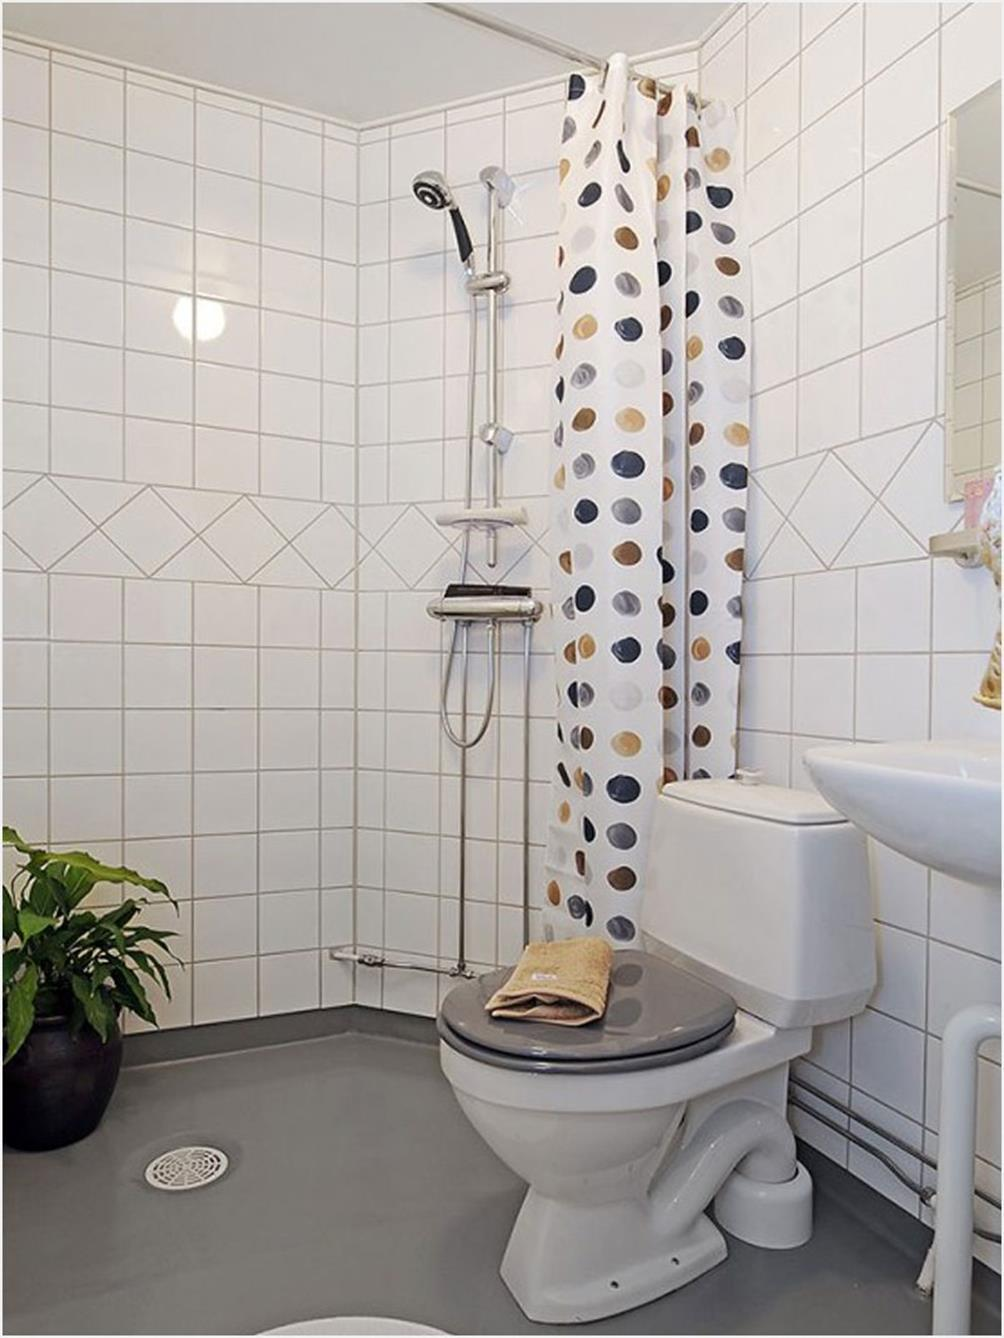 Apartment Bathroom Decorating Ideas On A Budget 29